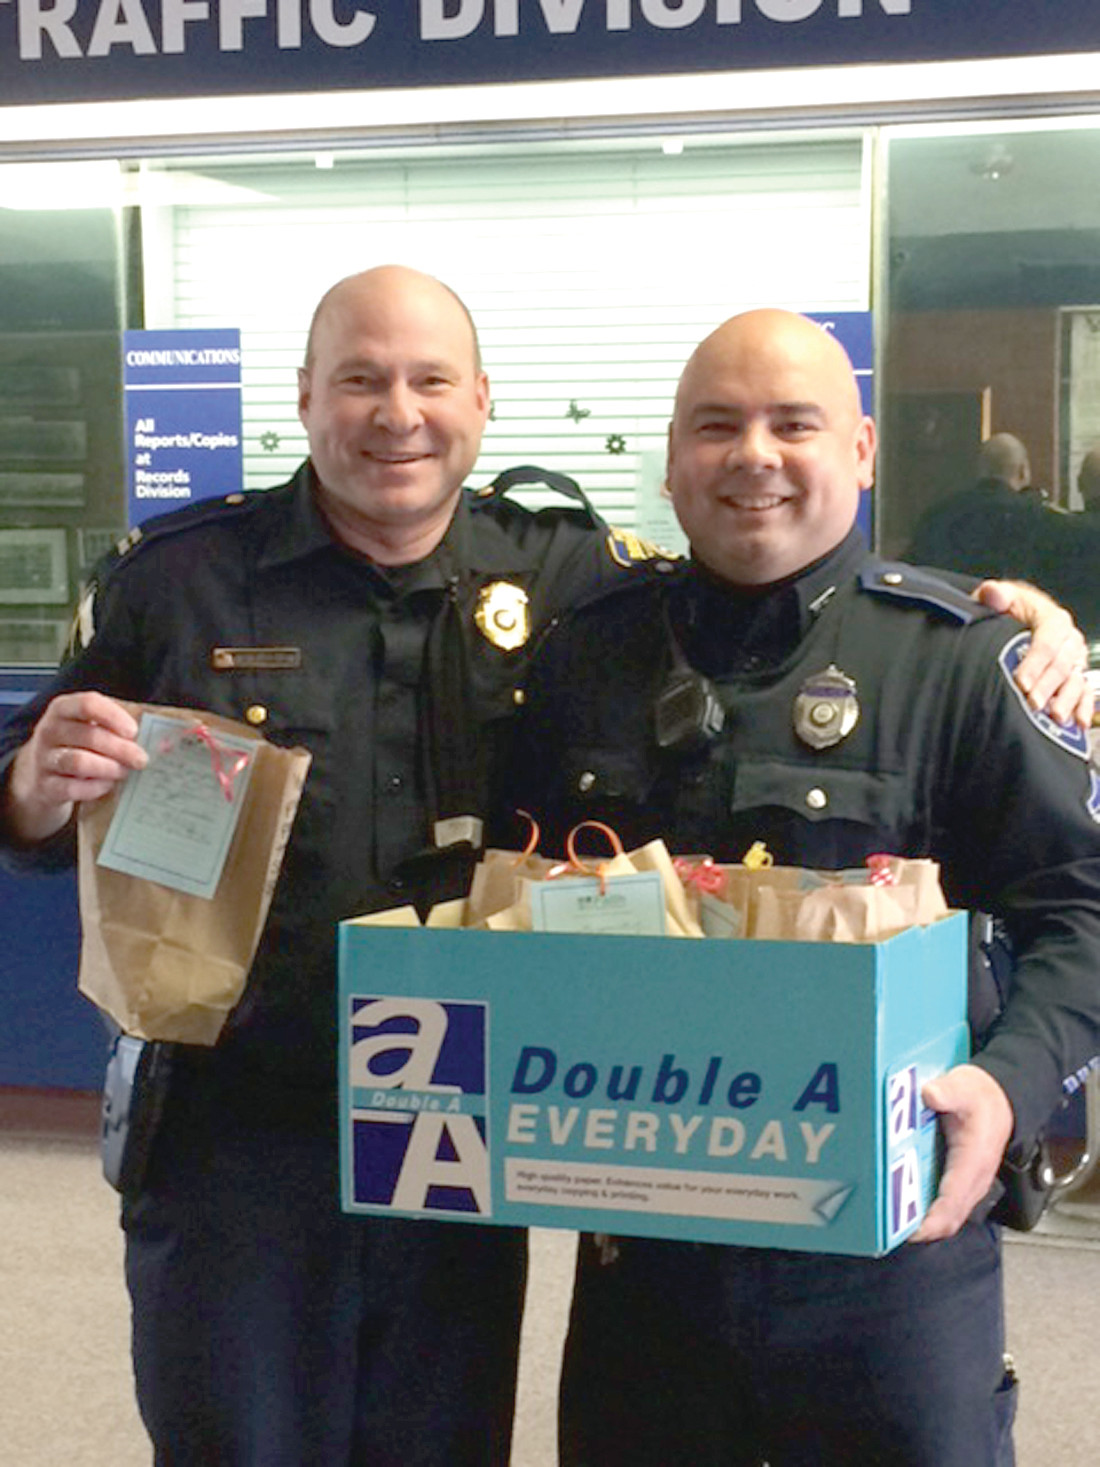 HAPPILY HUNGRY: Warwick Officers Joe Hopkins and Mark Jandreau happily except their personalized bags of cookies made from scratch by the parishioners at Faith Baptist Church.